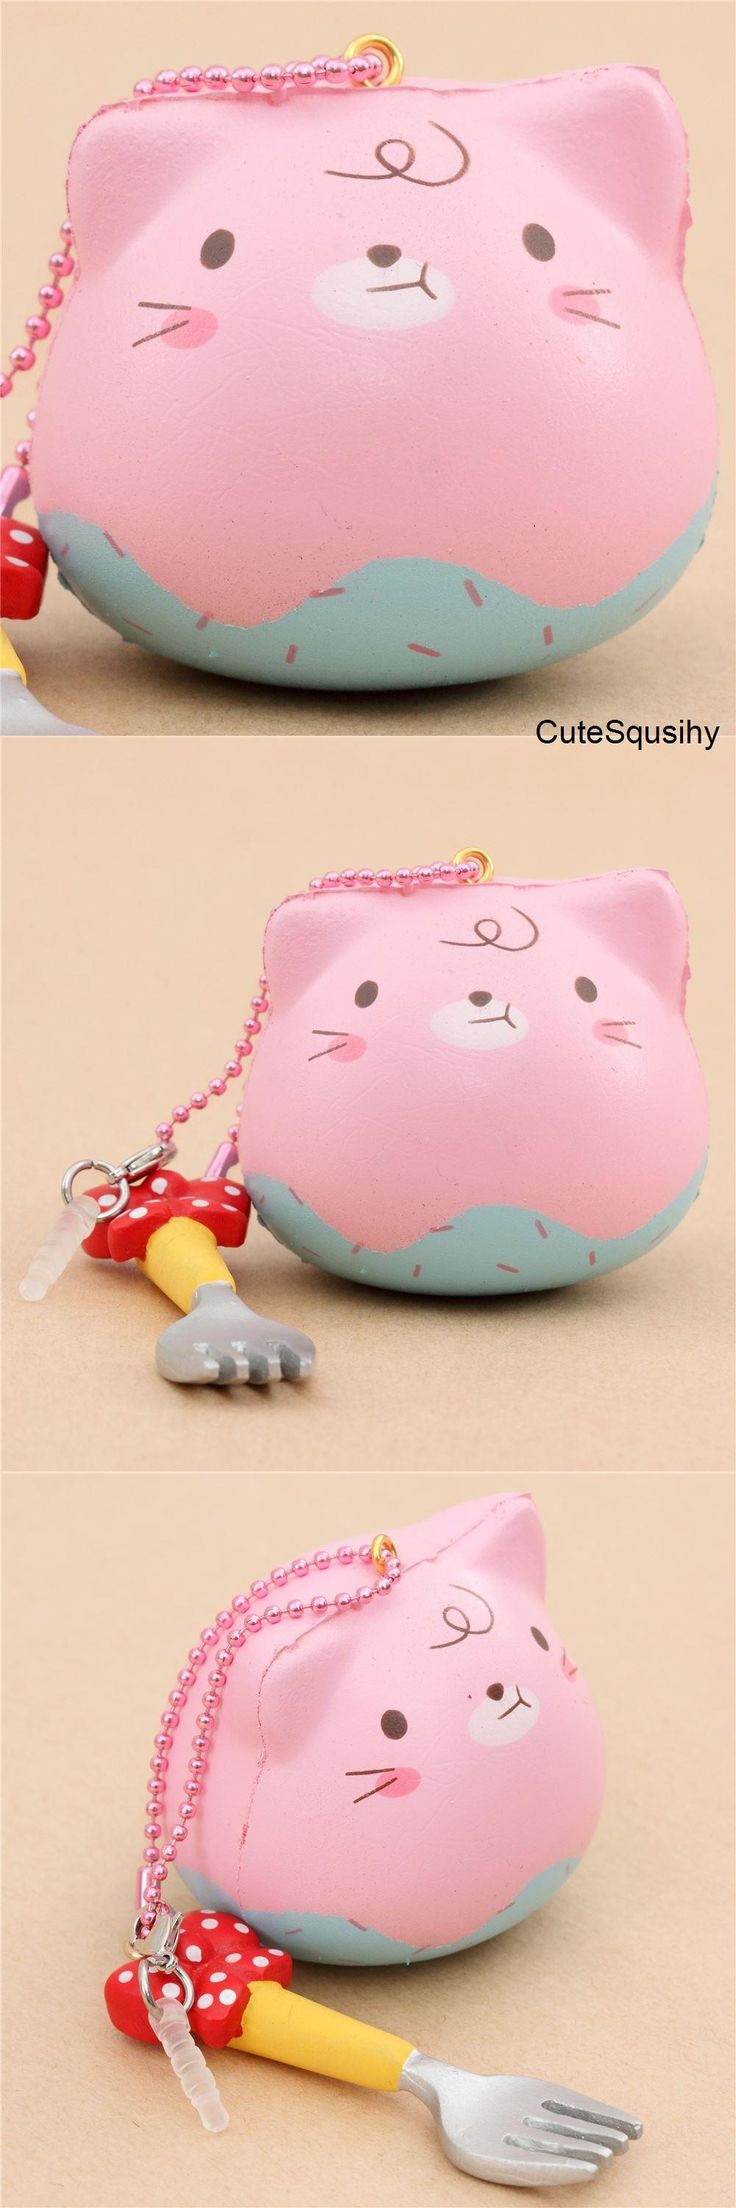 Kawaii pink cat squishy dipped in cotton candy ice cream!